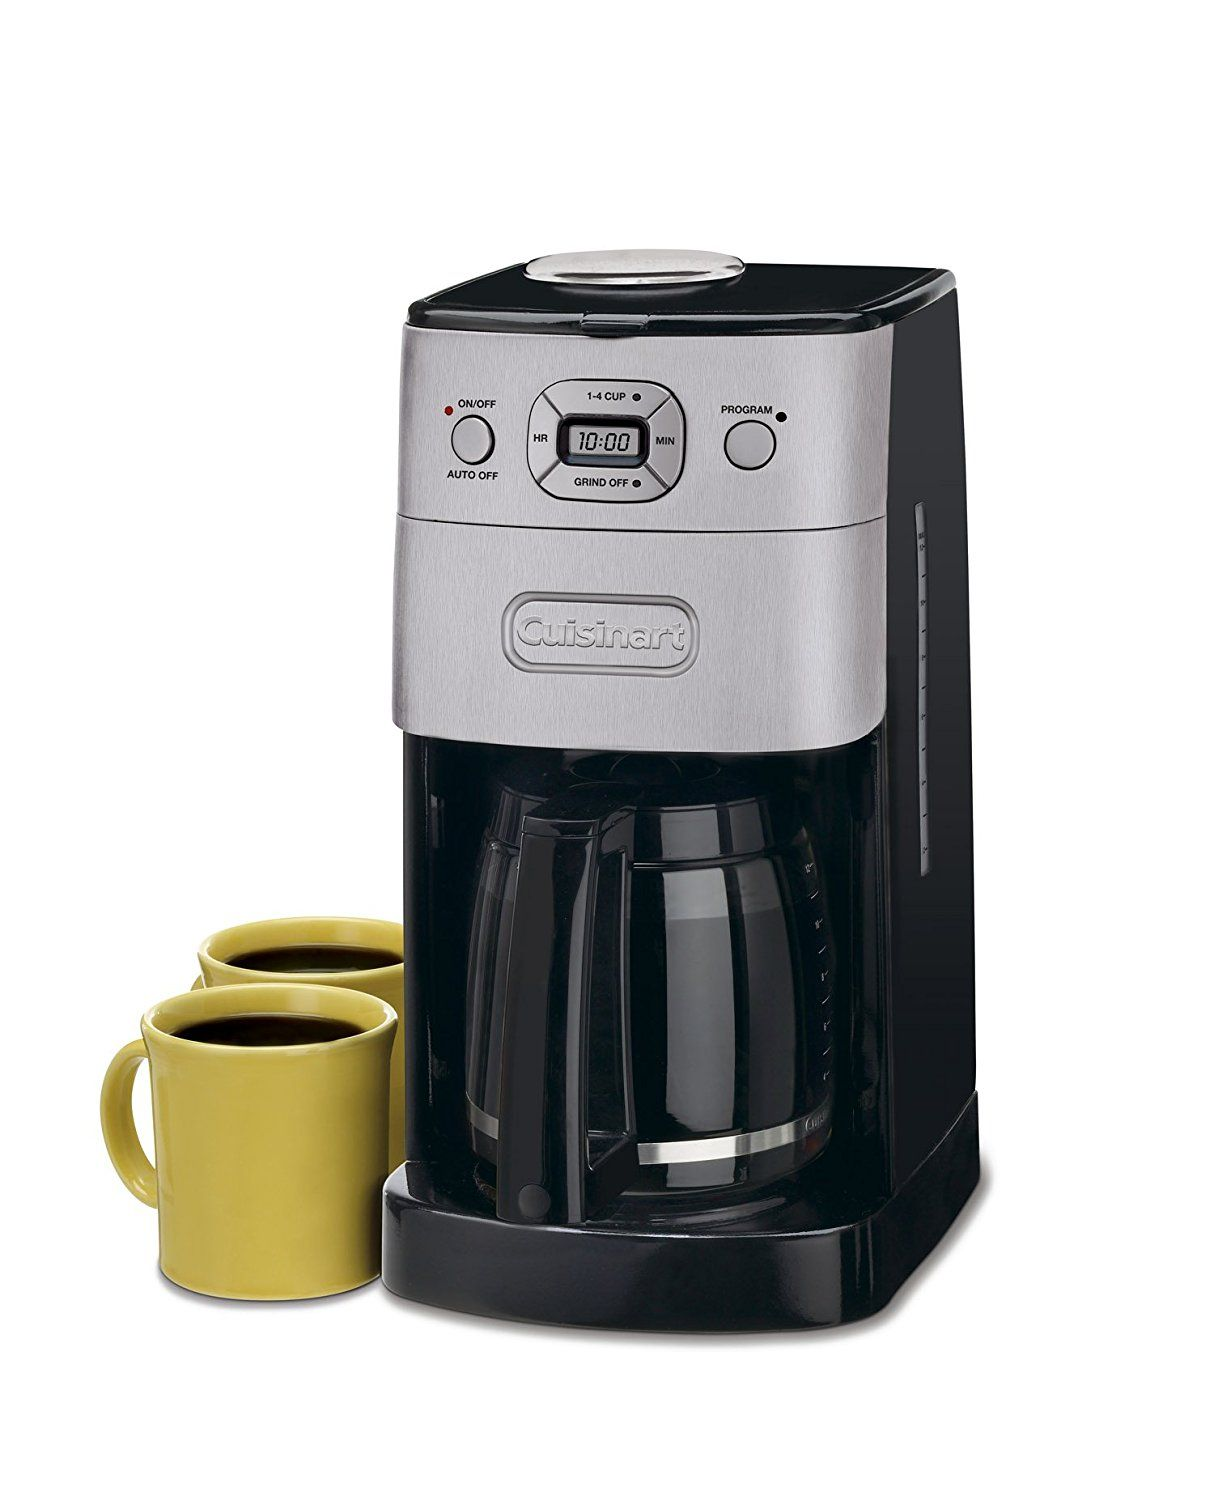 Cuisinart Grind And Brew 12 Cup Automatic Coffeemaker Brushed Metal Review Best Buymorecoffee Com Cuisinart Coffee Maker Best Coffee Maker Coffee Maker With Grinder